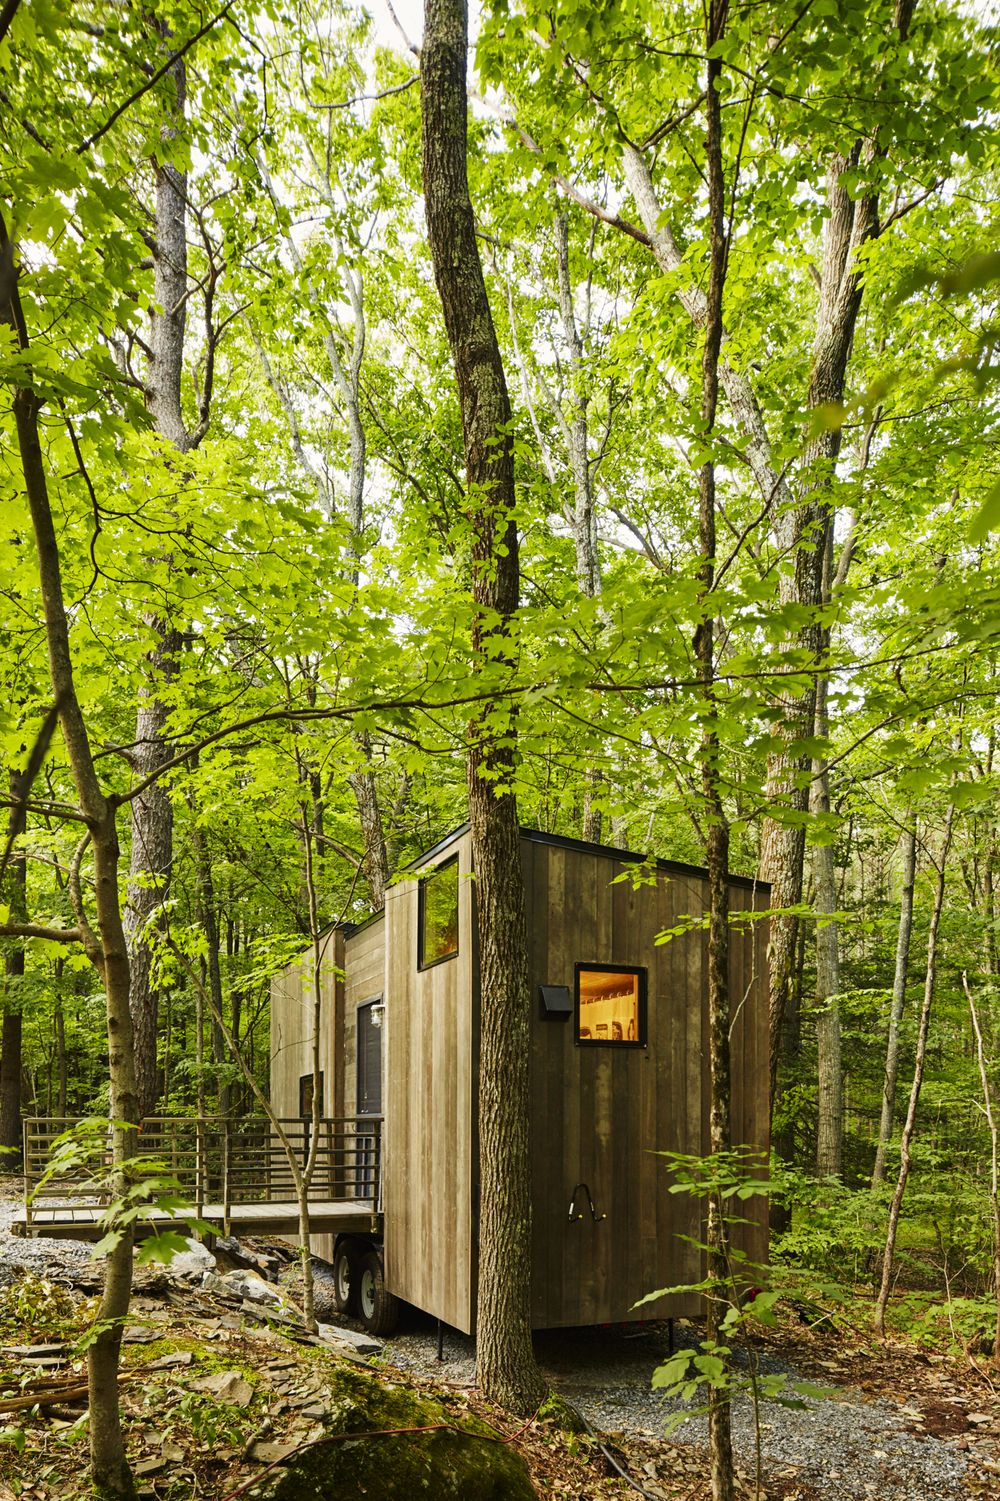 Tiny House Getaway: Test Drive a Mini Cabin in Rural New York